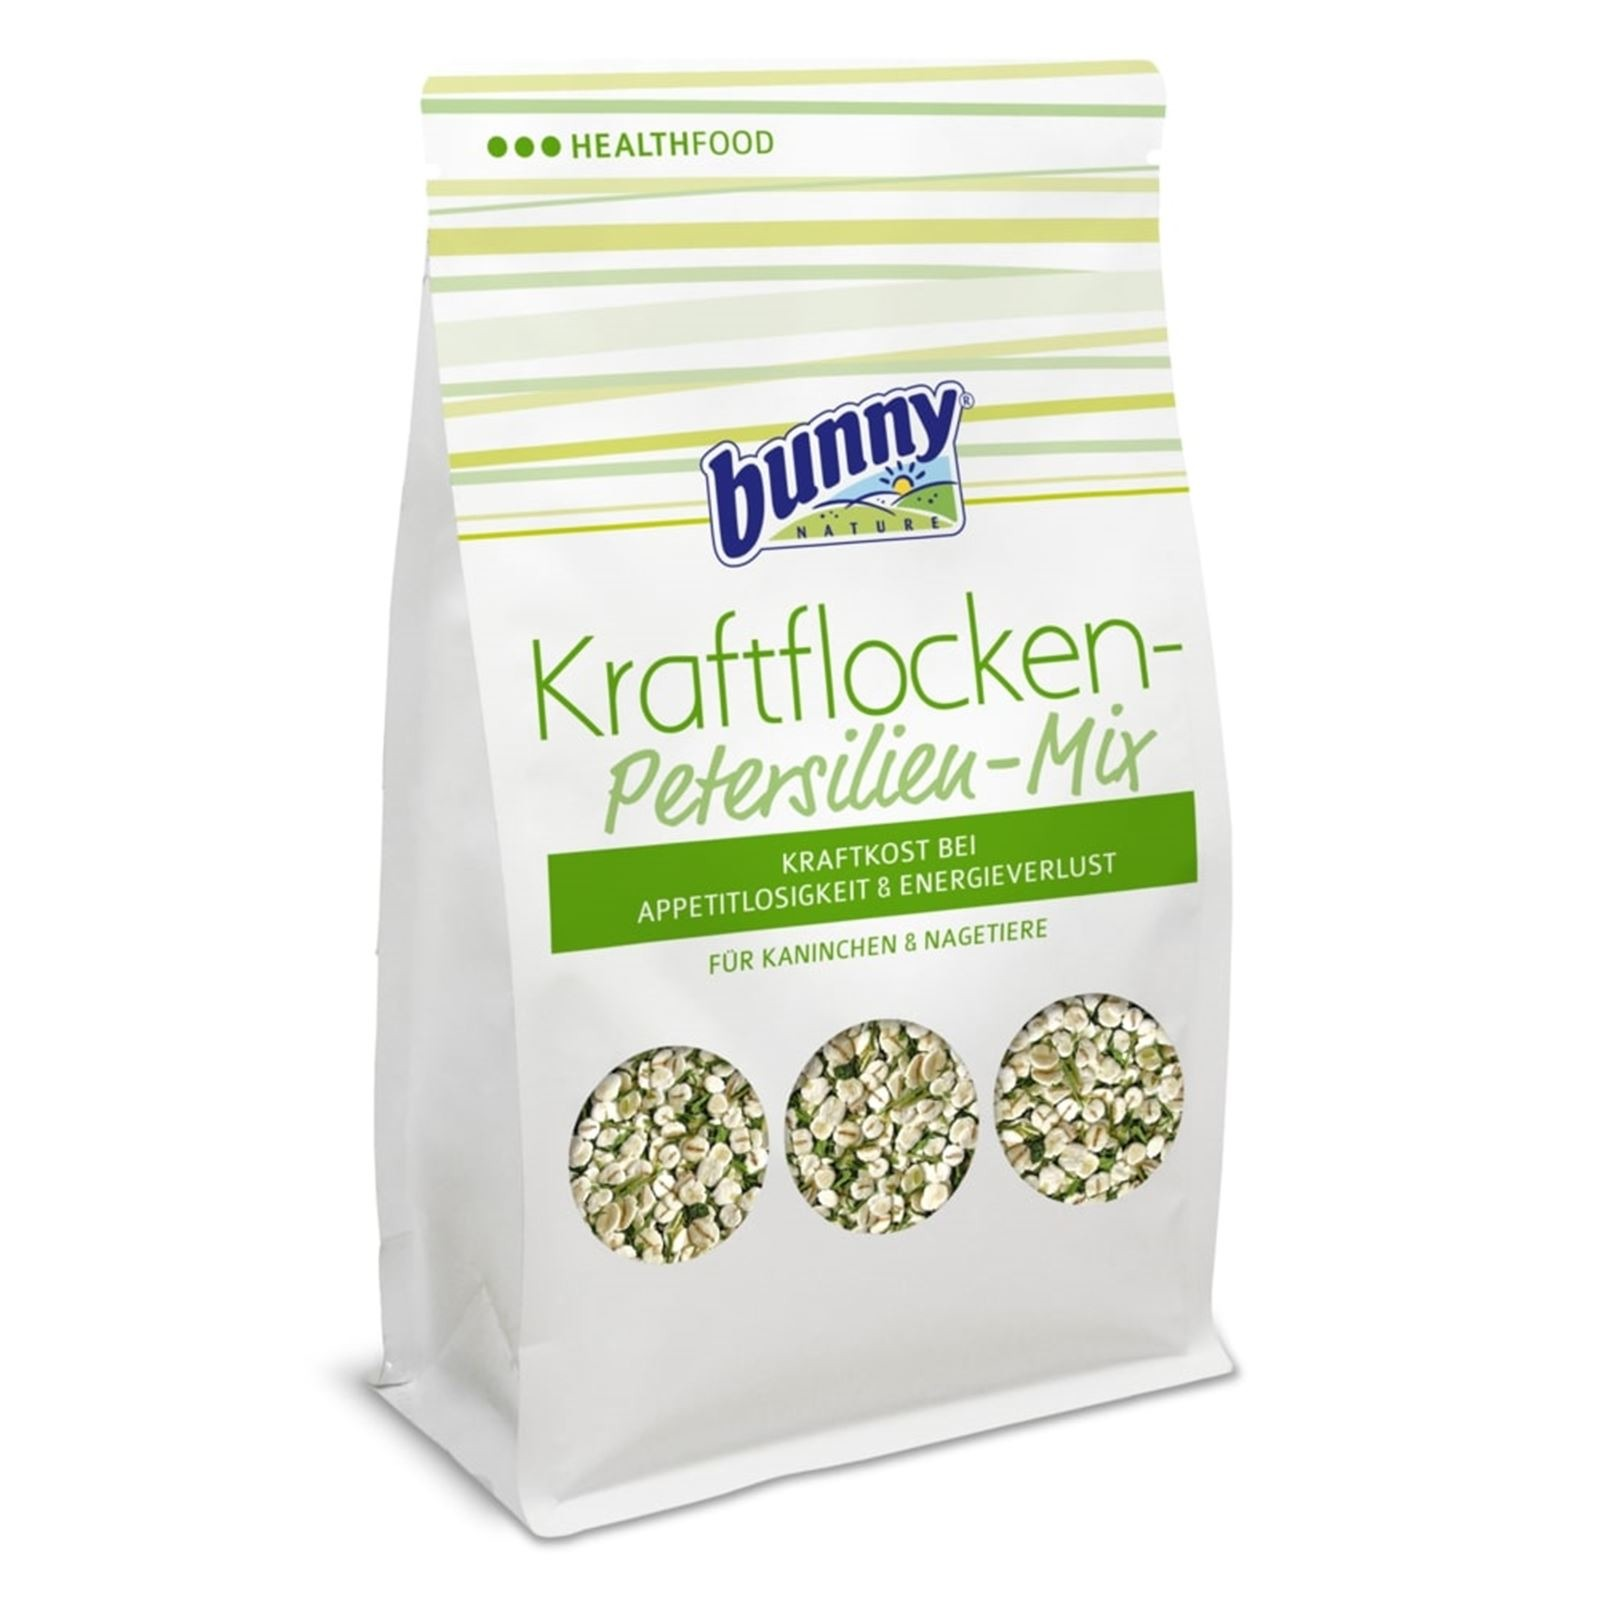 Bunny Nature Power Flake Parsley-mix